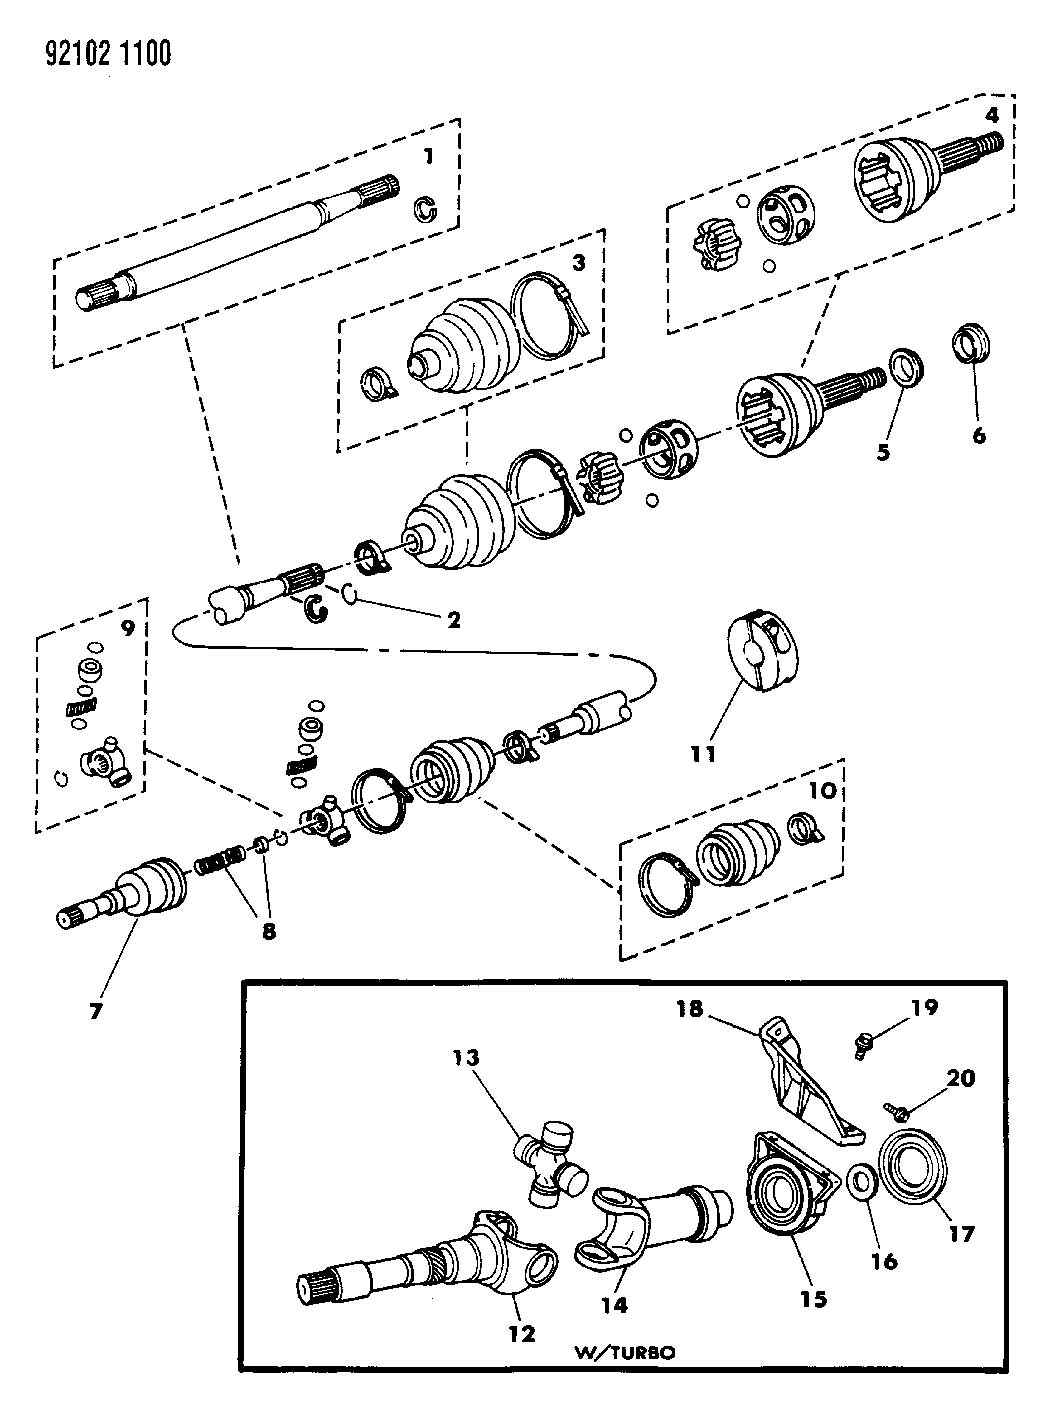 2001 Buick Century Brake Line Diagram besides Hood And  ponents Scat besides 1999 Chrysler 300m Electrical Diagram Html together with Exterior Trim Quarter Panel Scat also Centric 12063045 Disc Brake Rotor. on chrysler 300m body parts